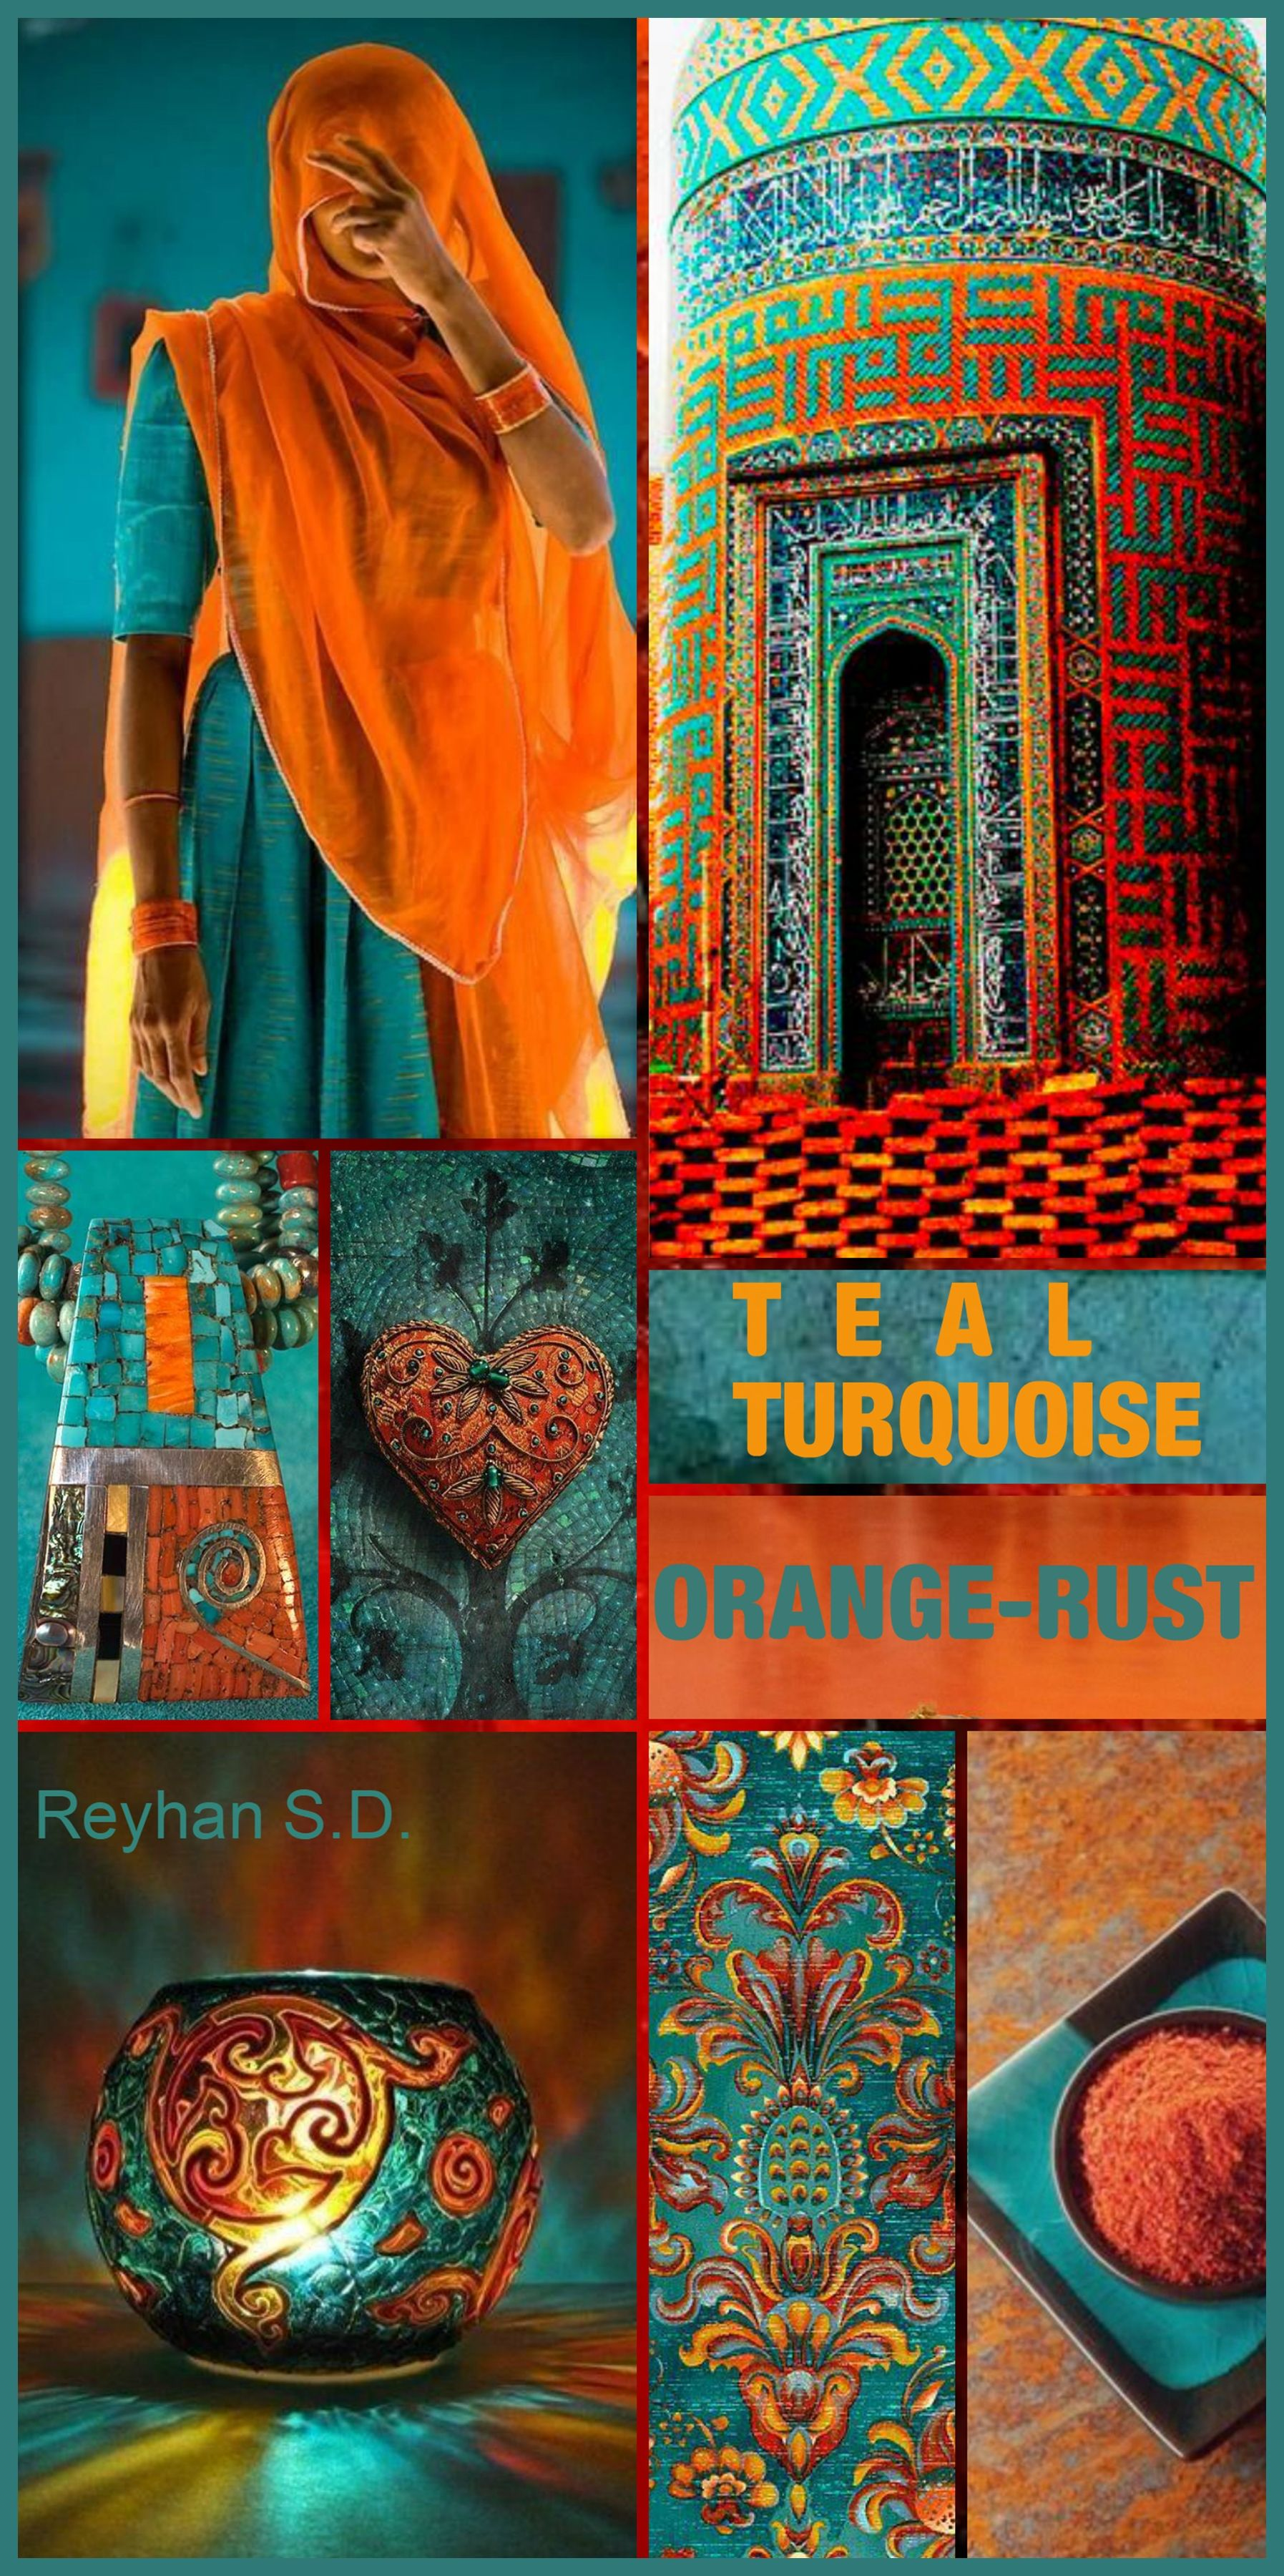 Teal Turquoise  Orange Rust  by Reyhan SD  moods